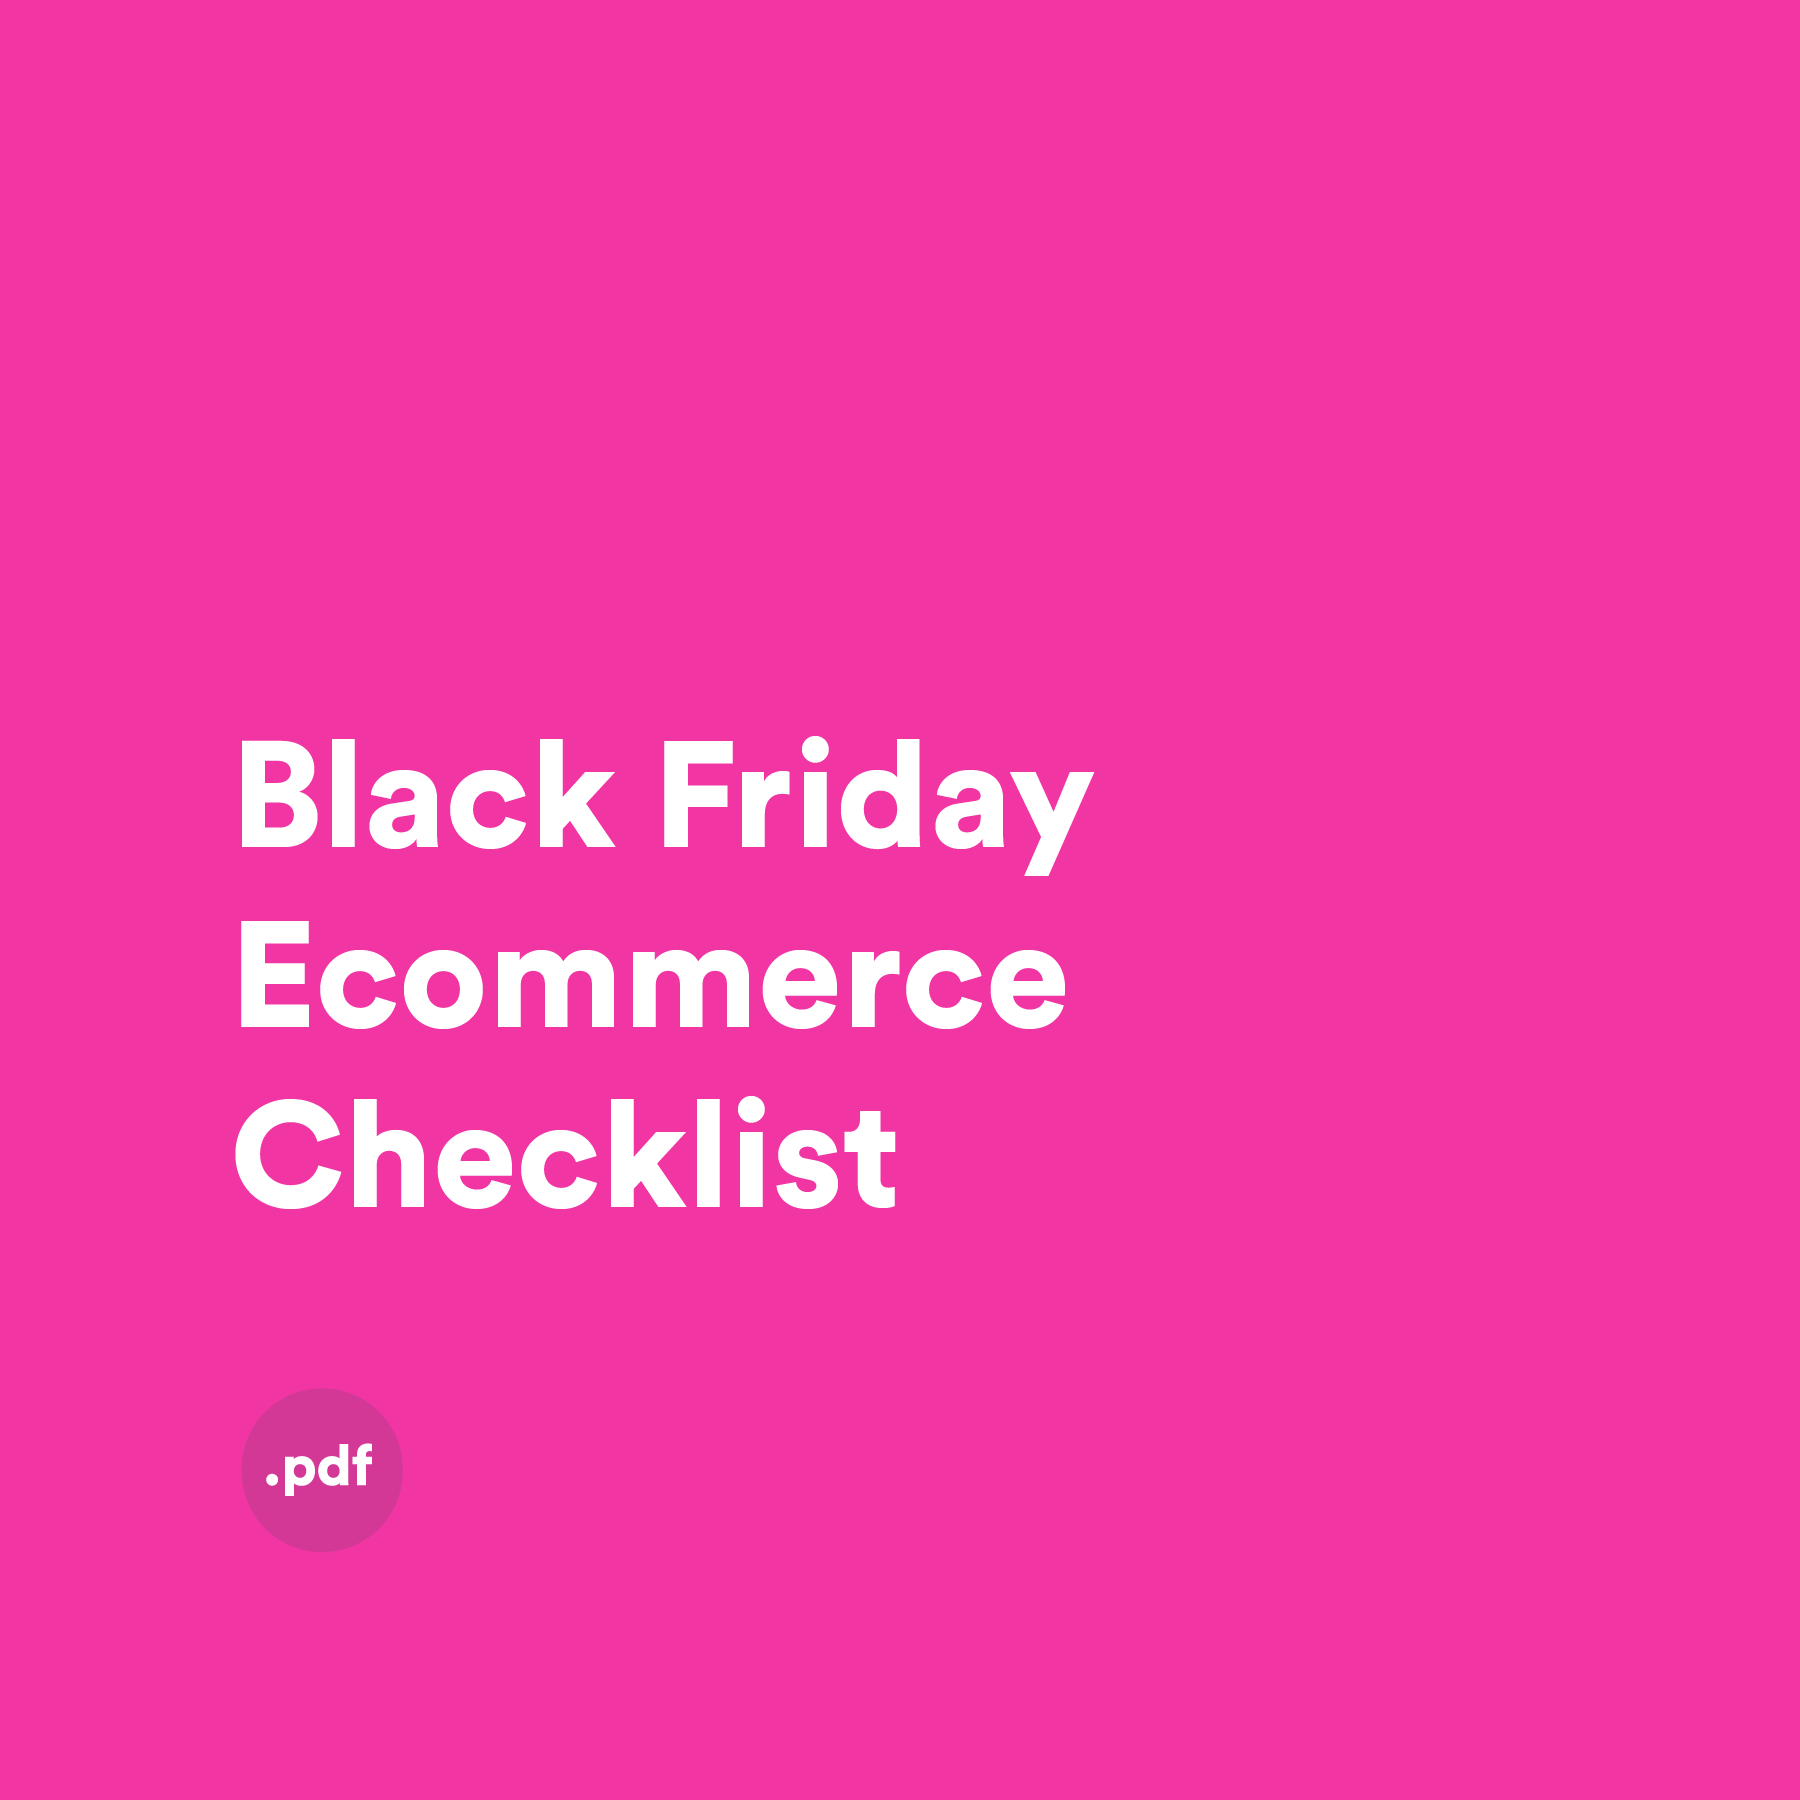 Black Friday eCommerce Checklist